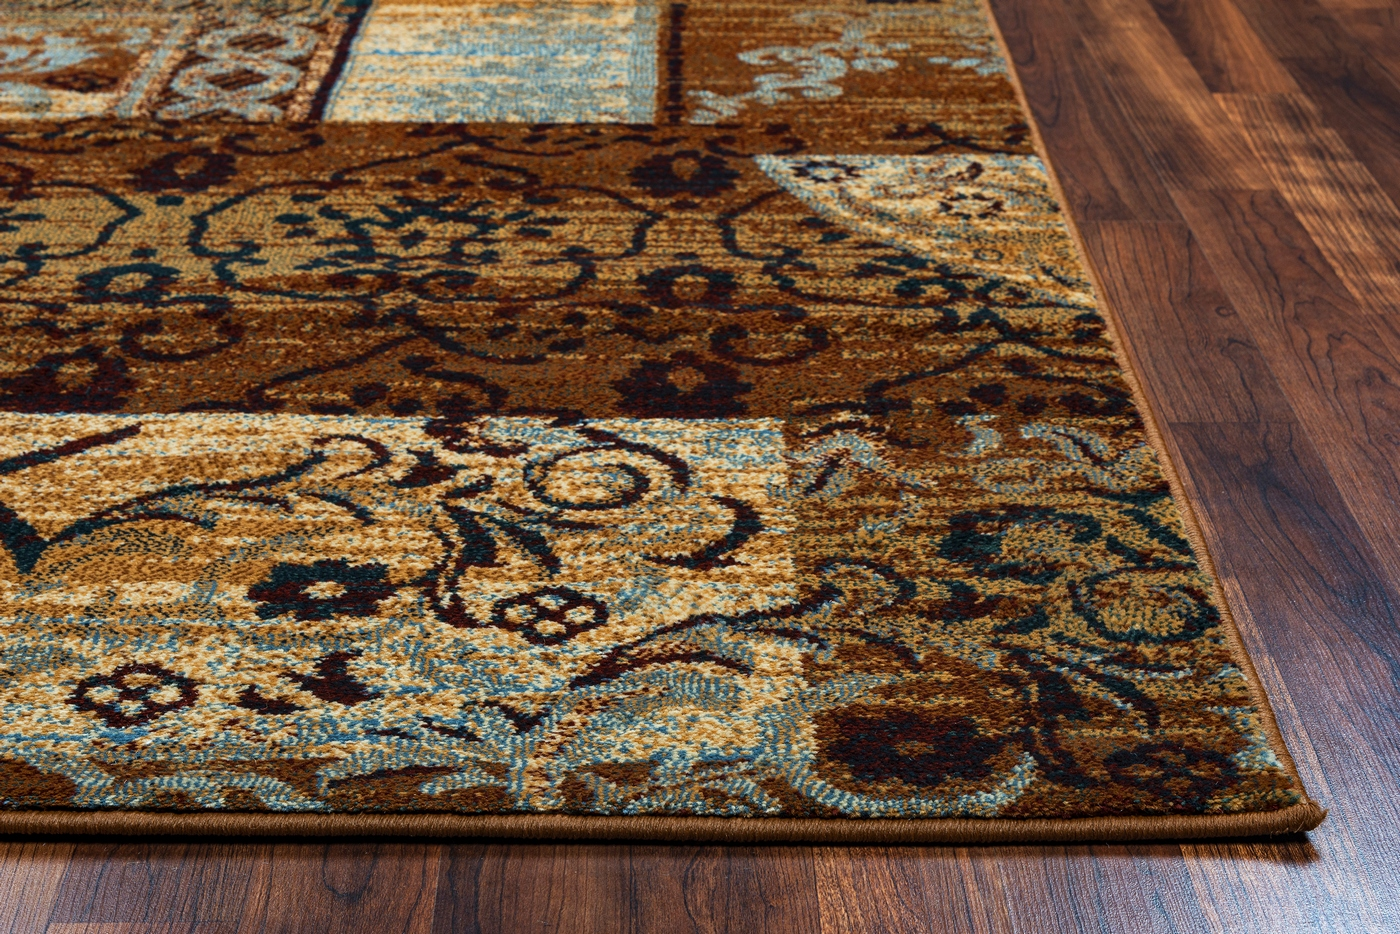 Bellevue Rustic Patchwork Area Rug In Beige Blue Burgundy